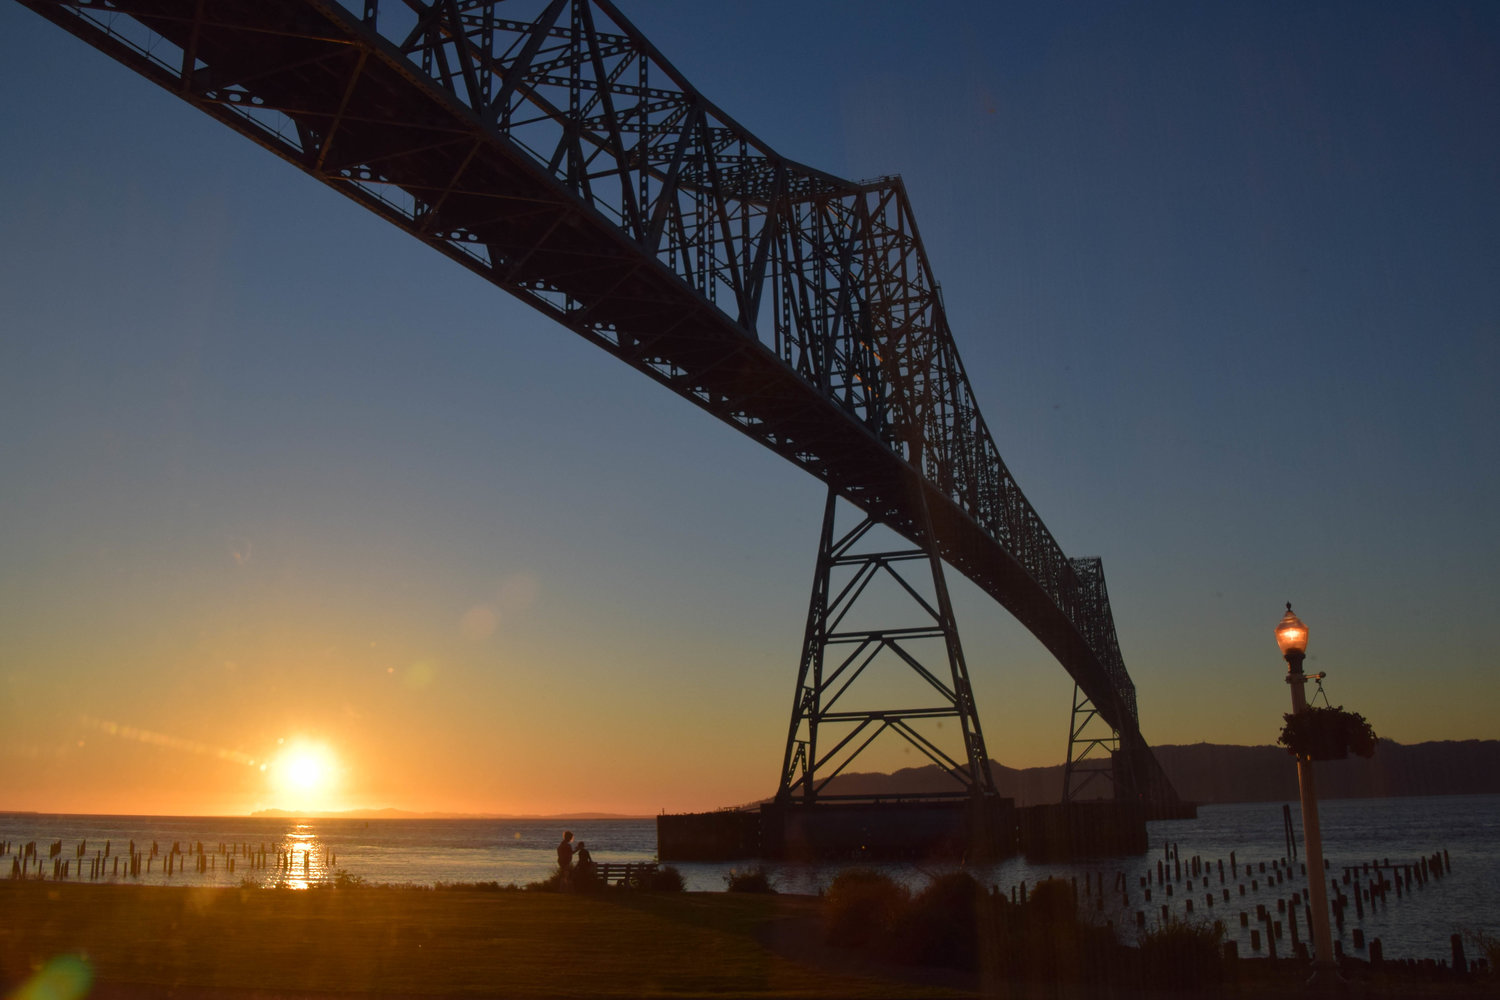 The ride starts in Astoria Oregon on Sunday June 23rd - This is the blog where I'll post notes and photos from the road.